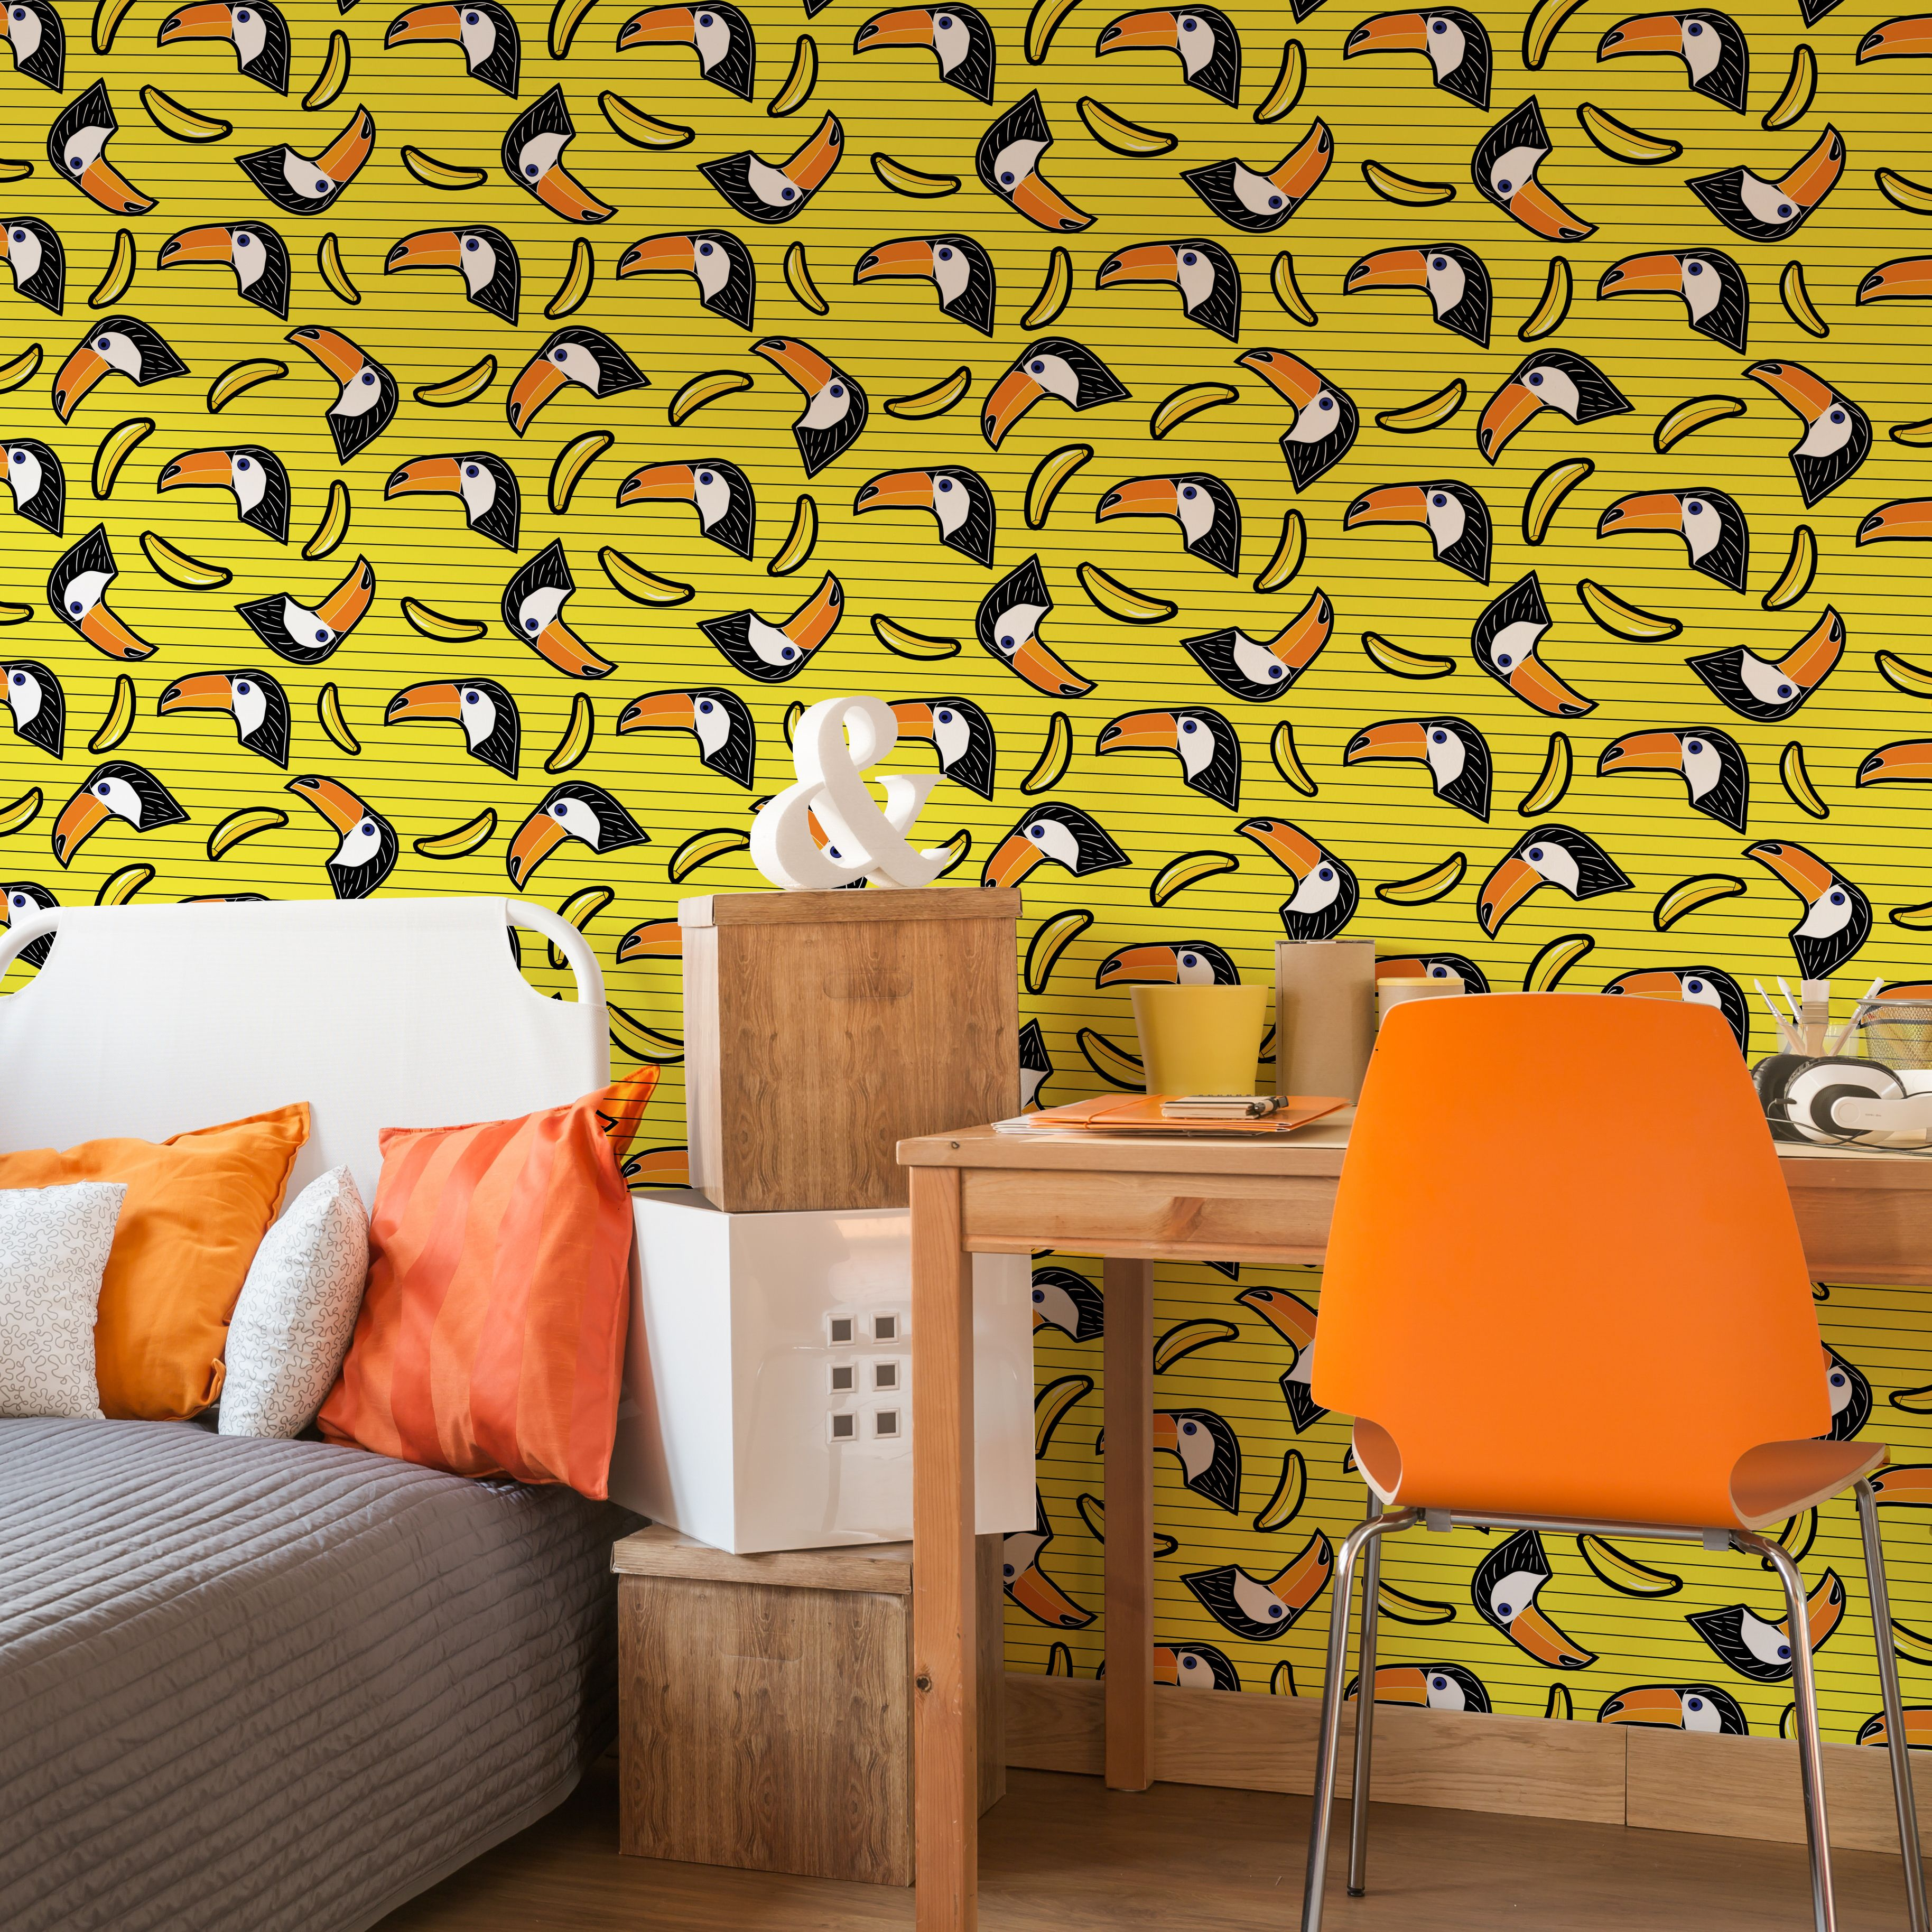 Toucan dizziness • Contemporary - Teenager\'s room - Wall Murals ...